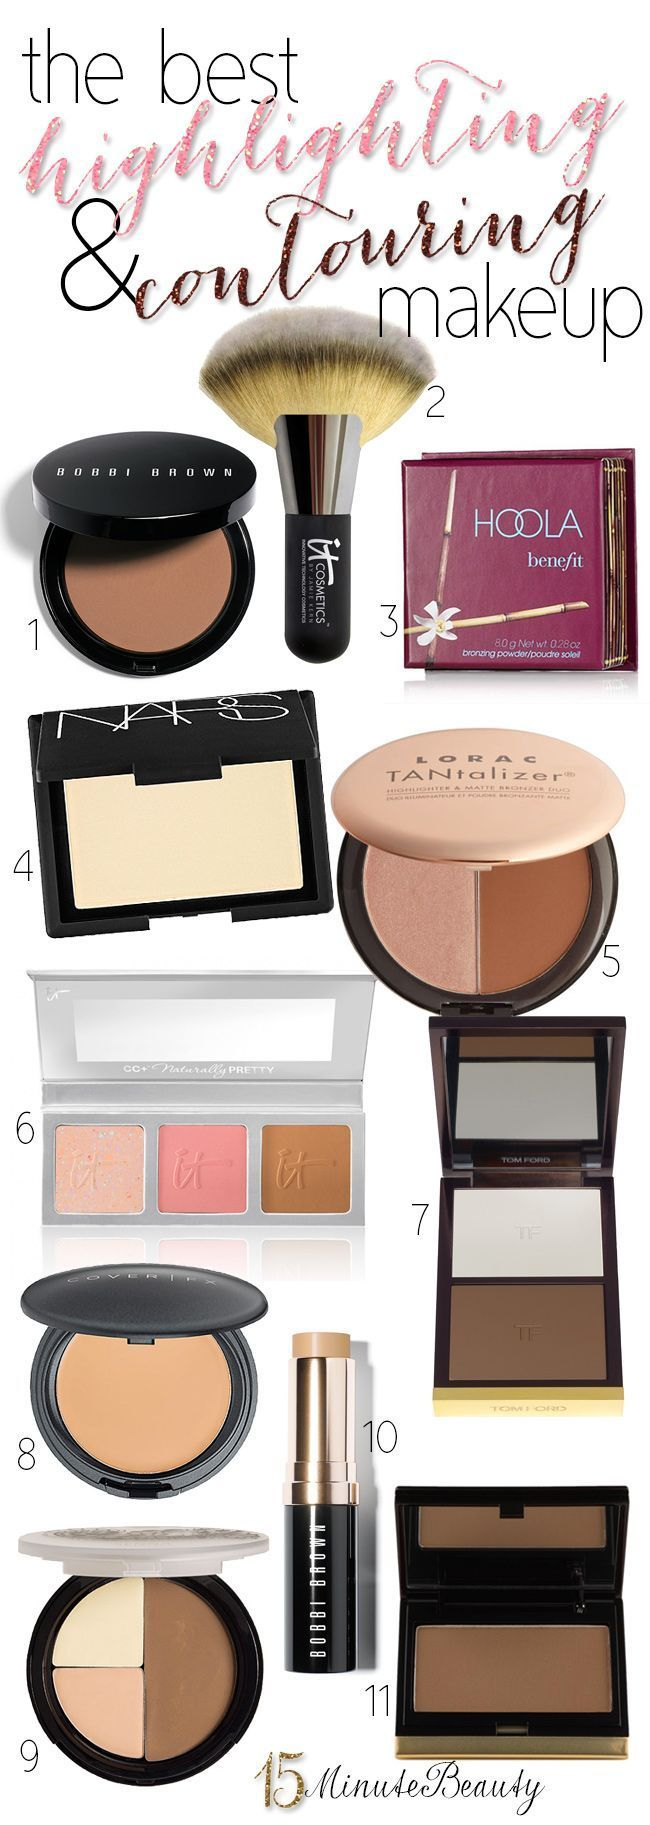 Favorite Contouring and Highlighting Products of #Makeup Artists | thebeautyspotqld.com.au